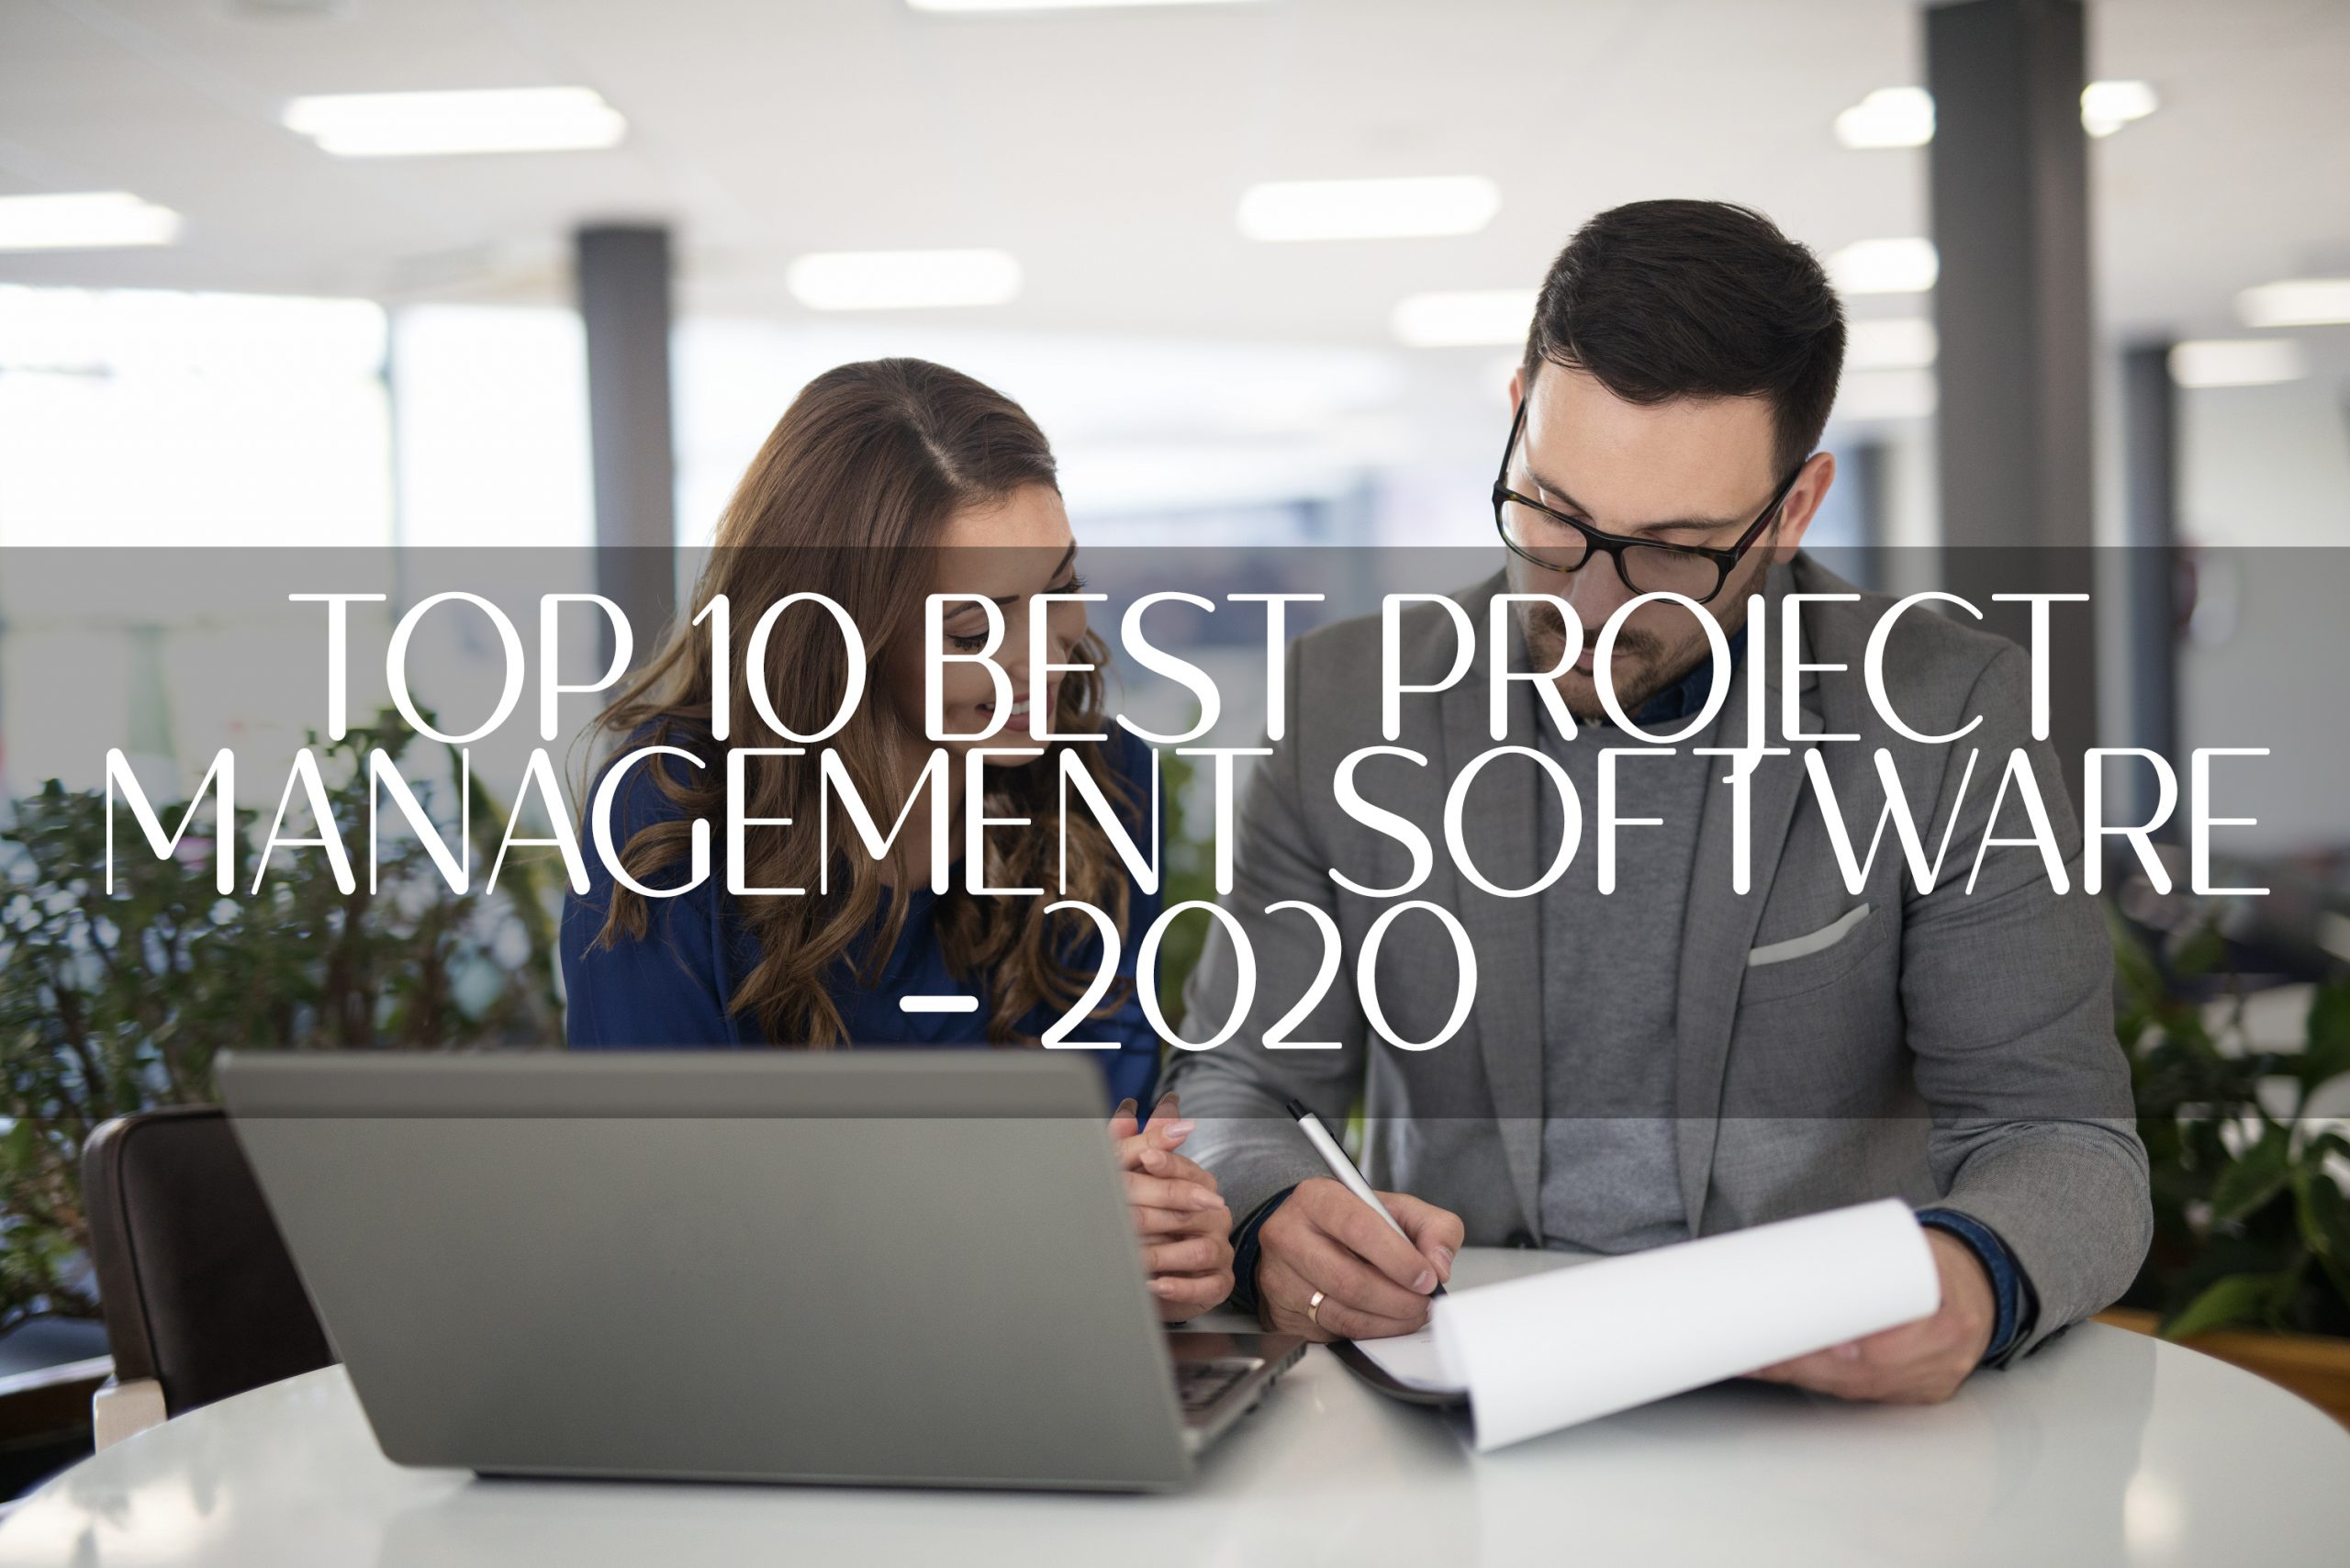 TOP 10 PROJECT MANAGEMENT SOFTWARE IN 2020